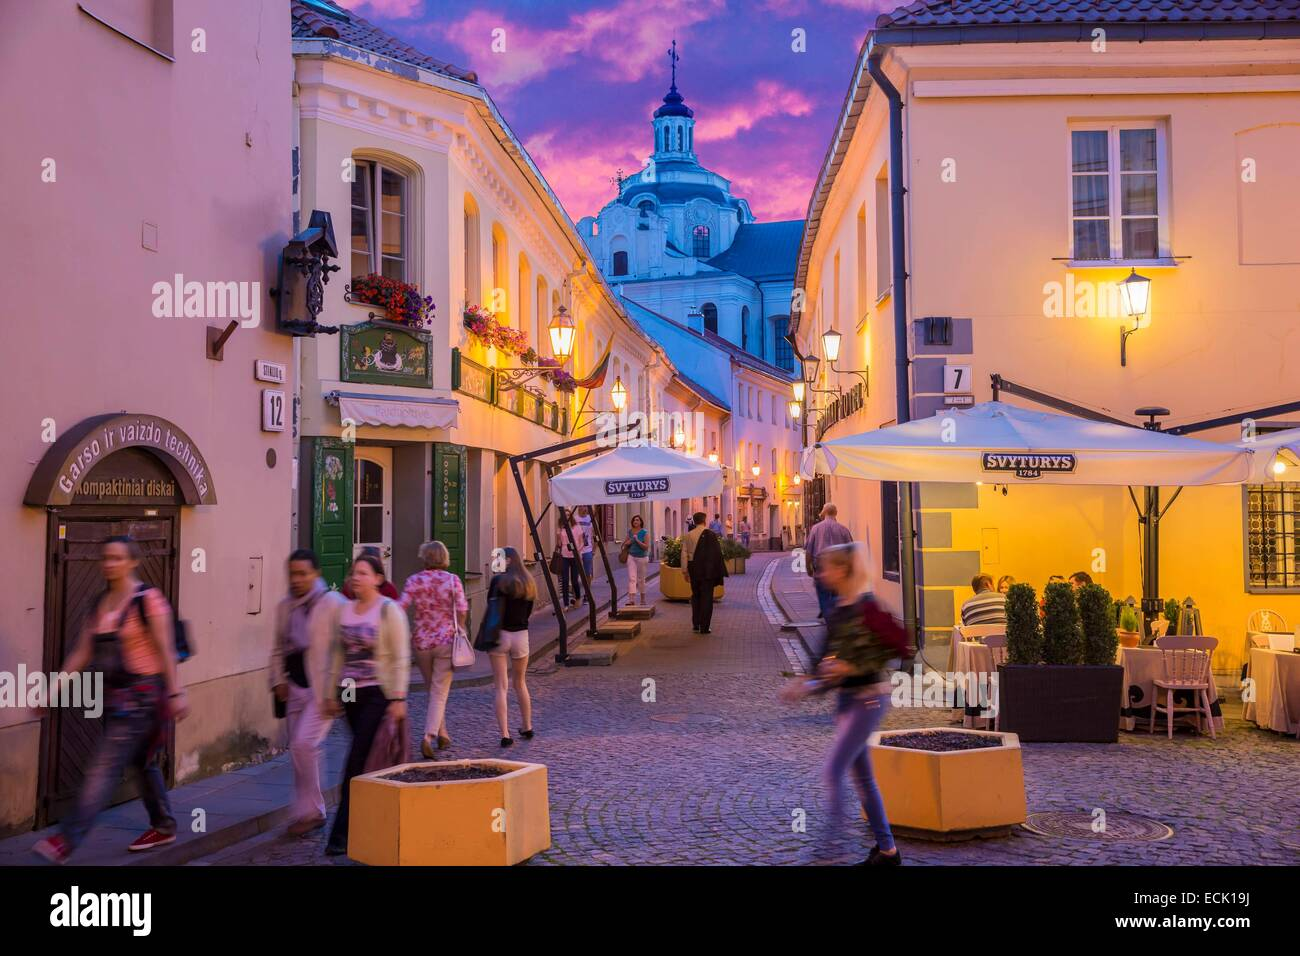 Lithuania (Baltic States), Vilnius, historical center listed as World Heritage by UNESCO, the small Jewish ghetto - Stock Image